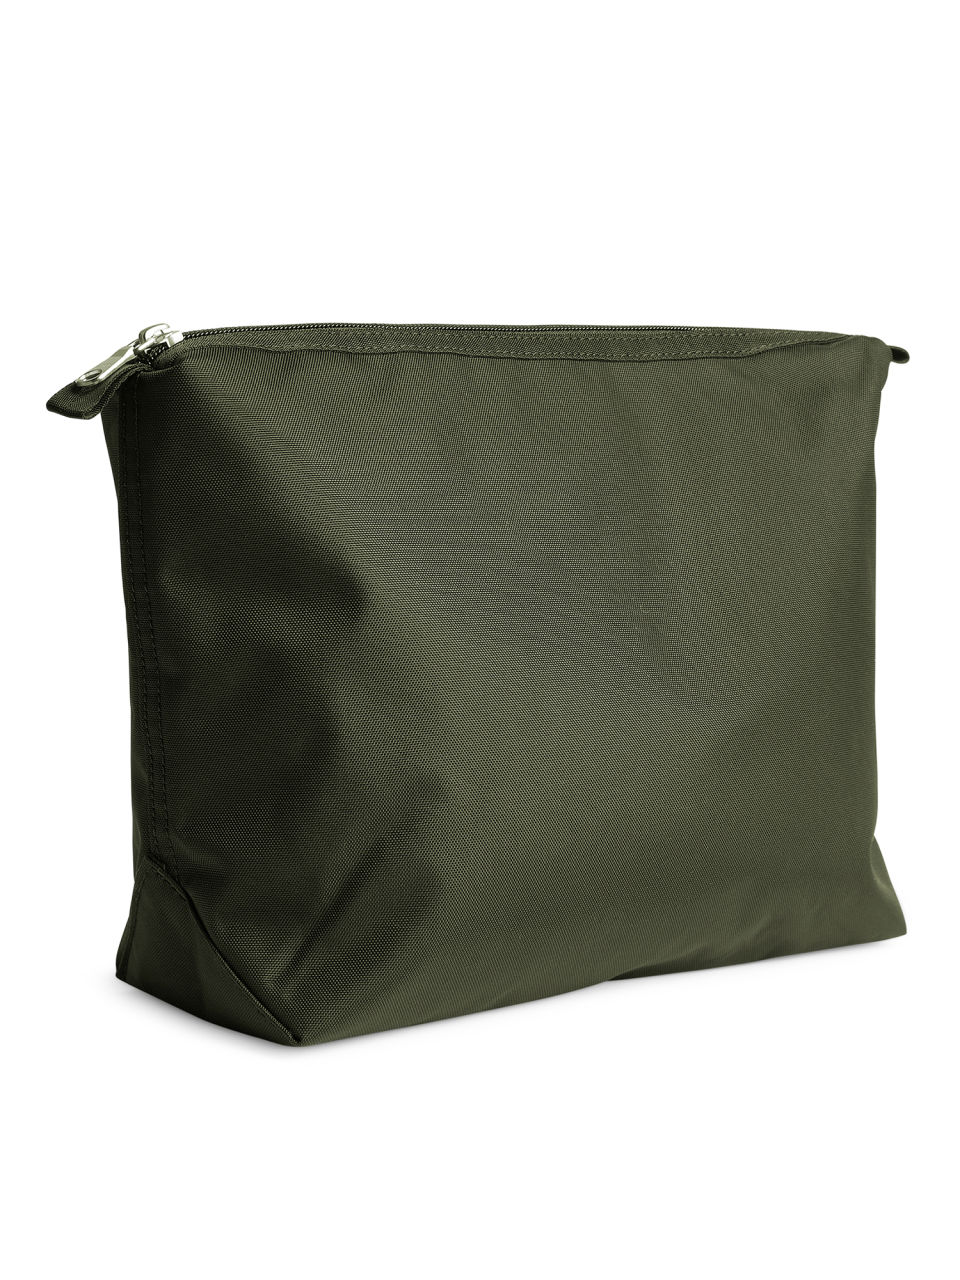 Side image of Arket large toiletry bag in green